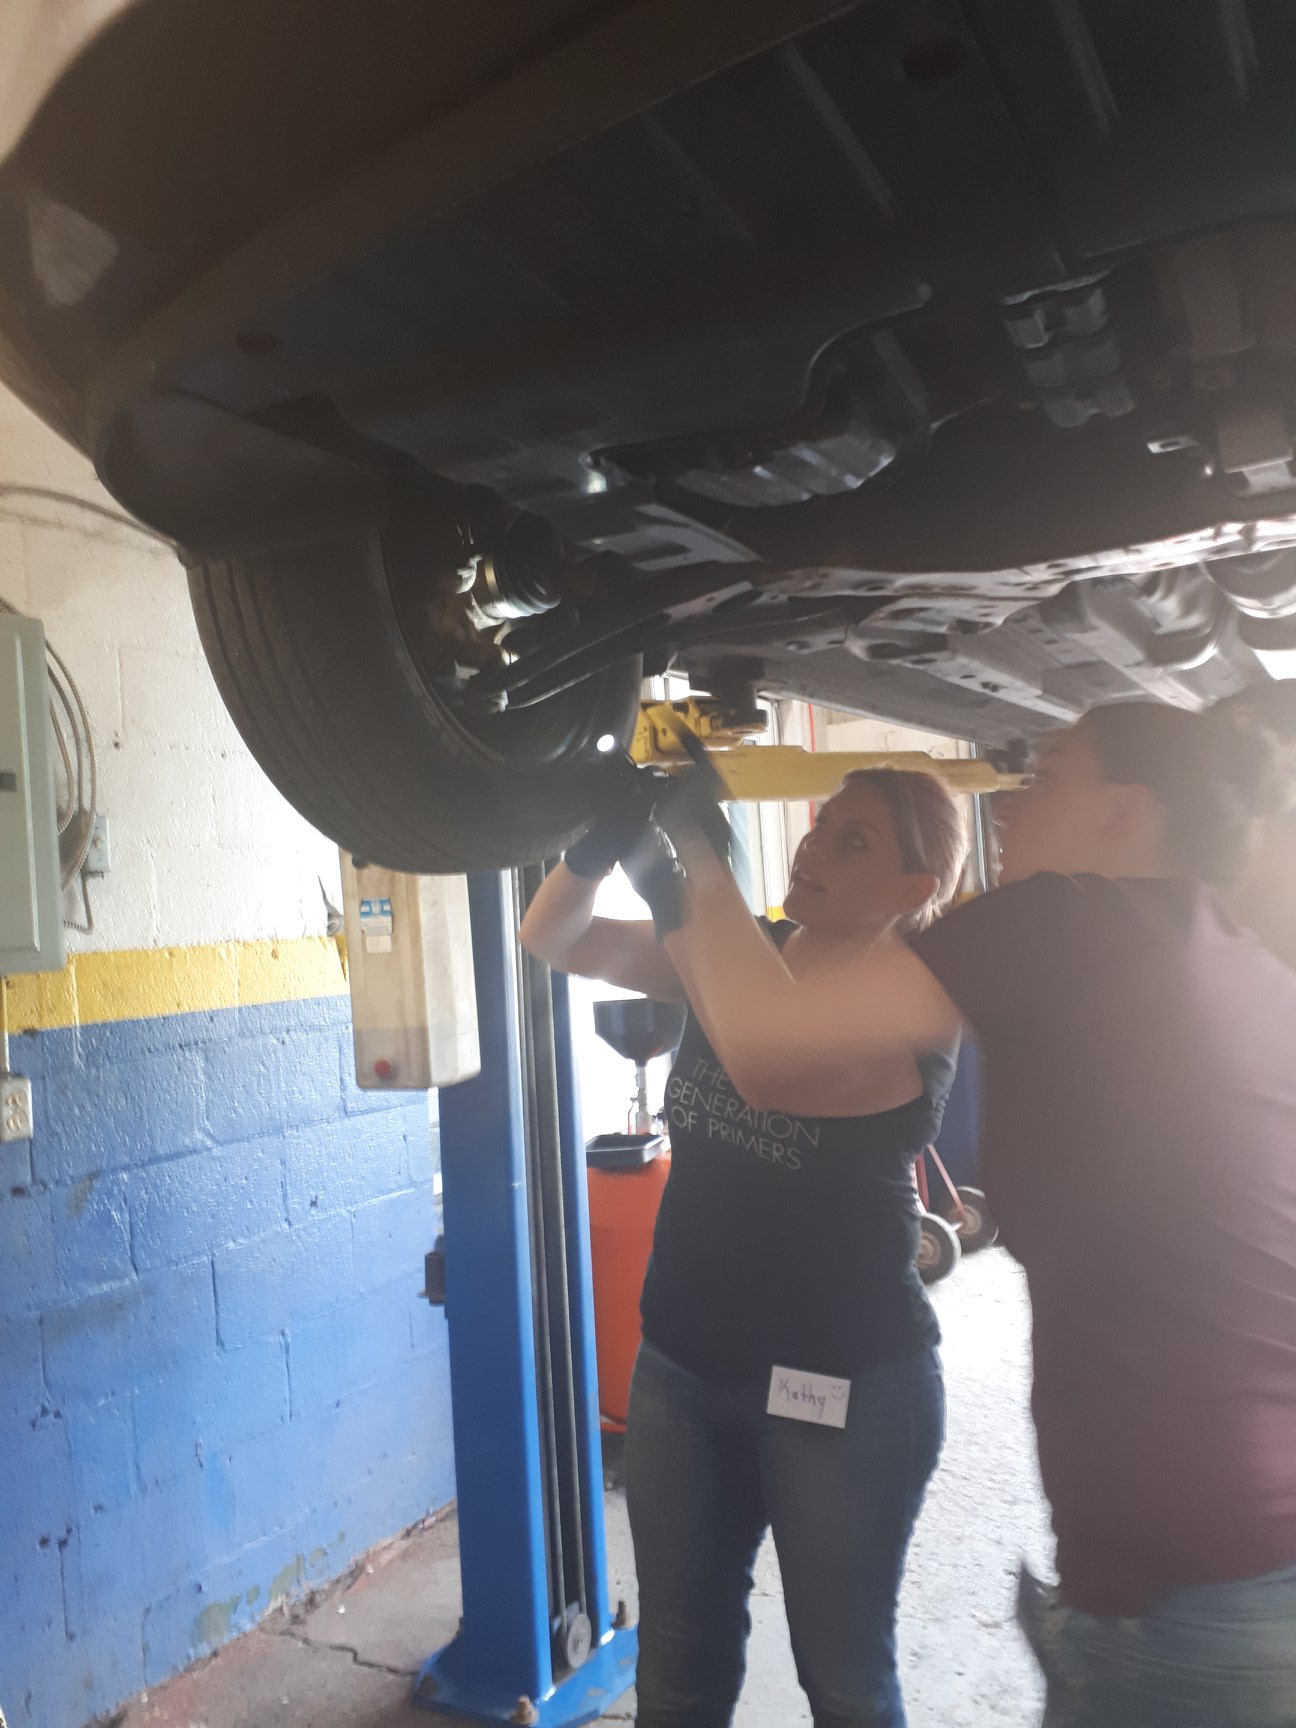 Two women working underneath a car